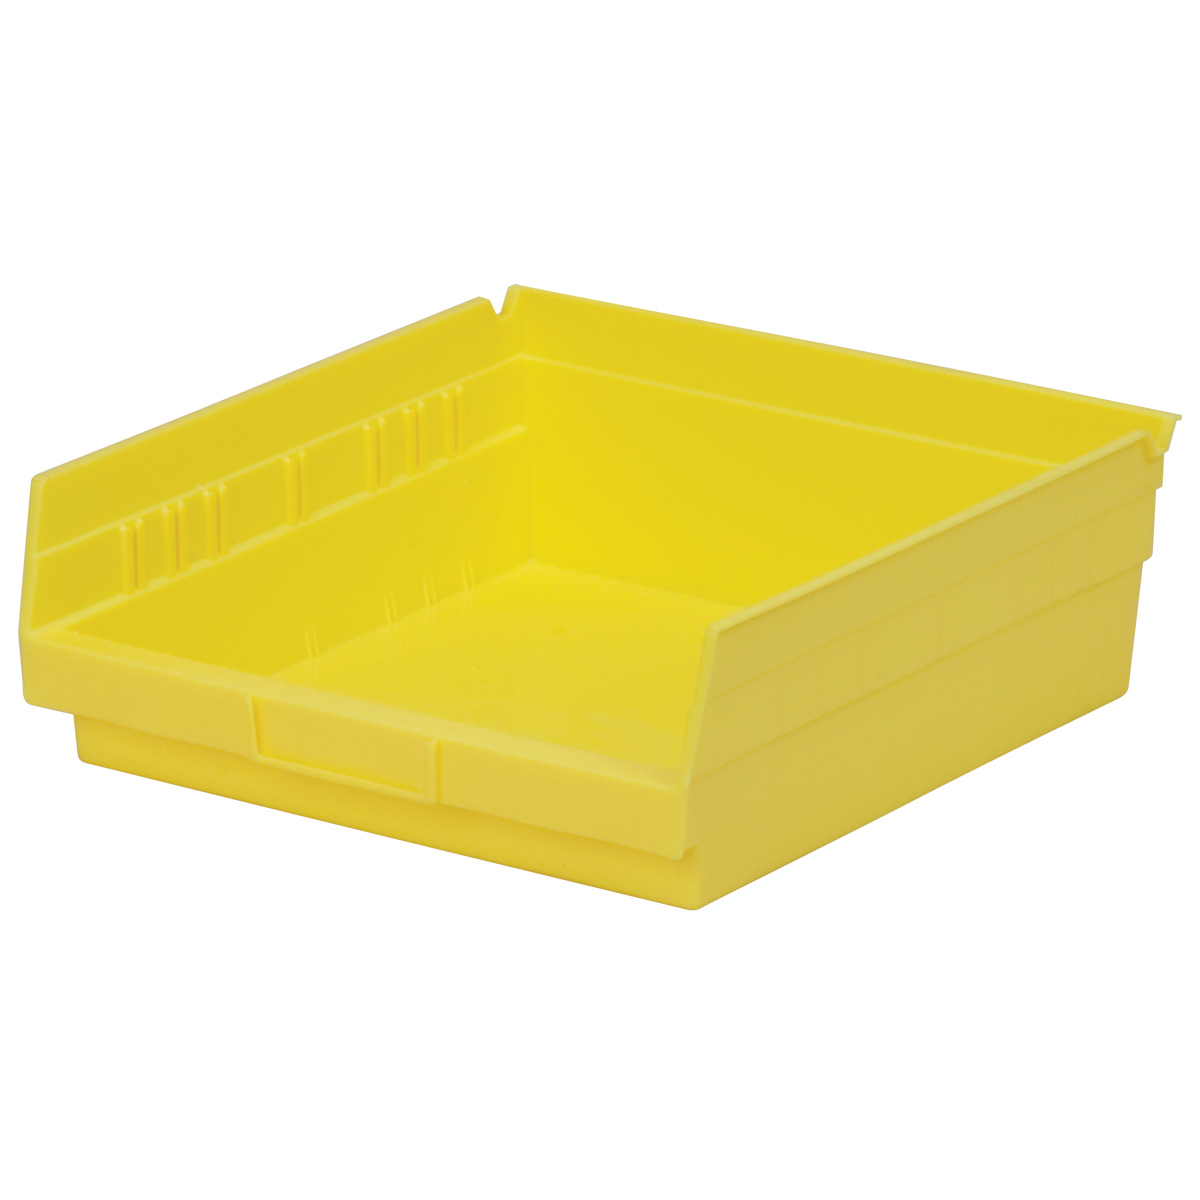 Shelf Bin 11-5/8 x 11-1/8 x 4, Yellow (30170YELLO).  This item sold in carton quantities of 12.